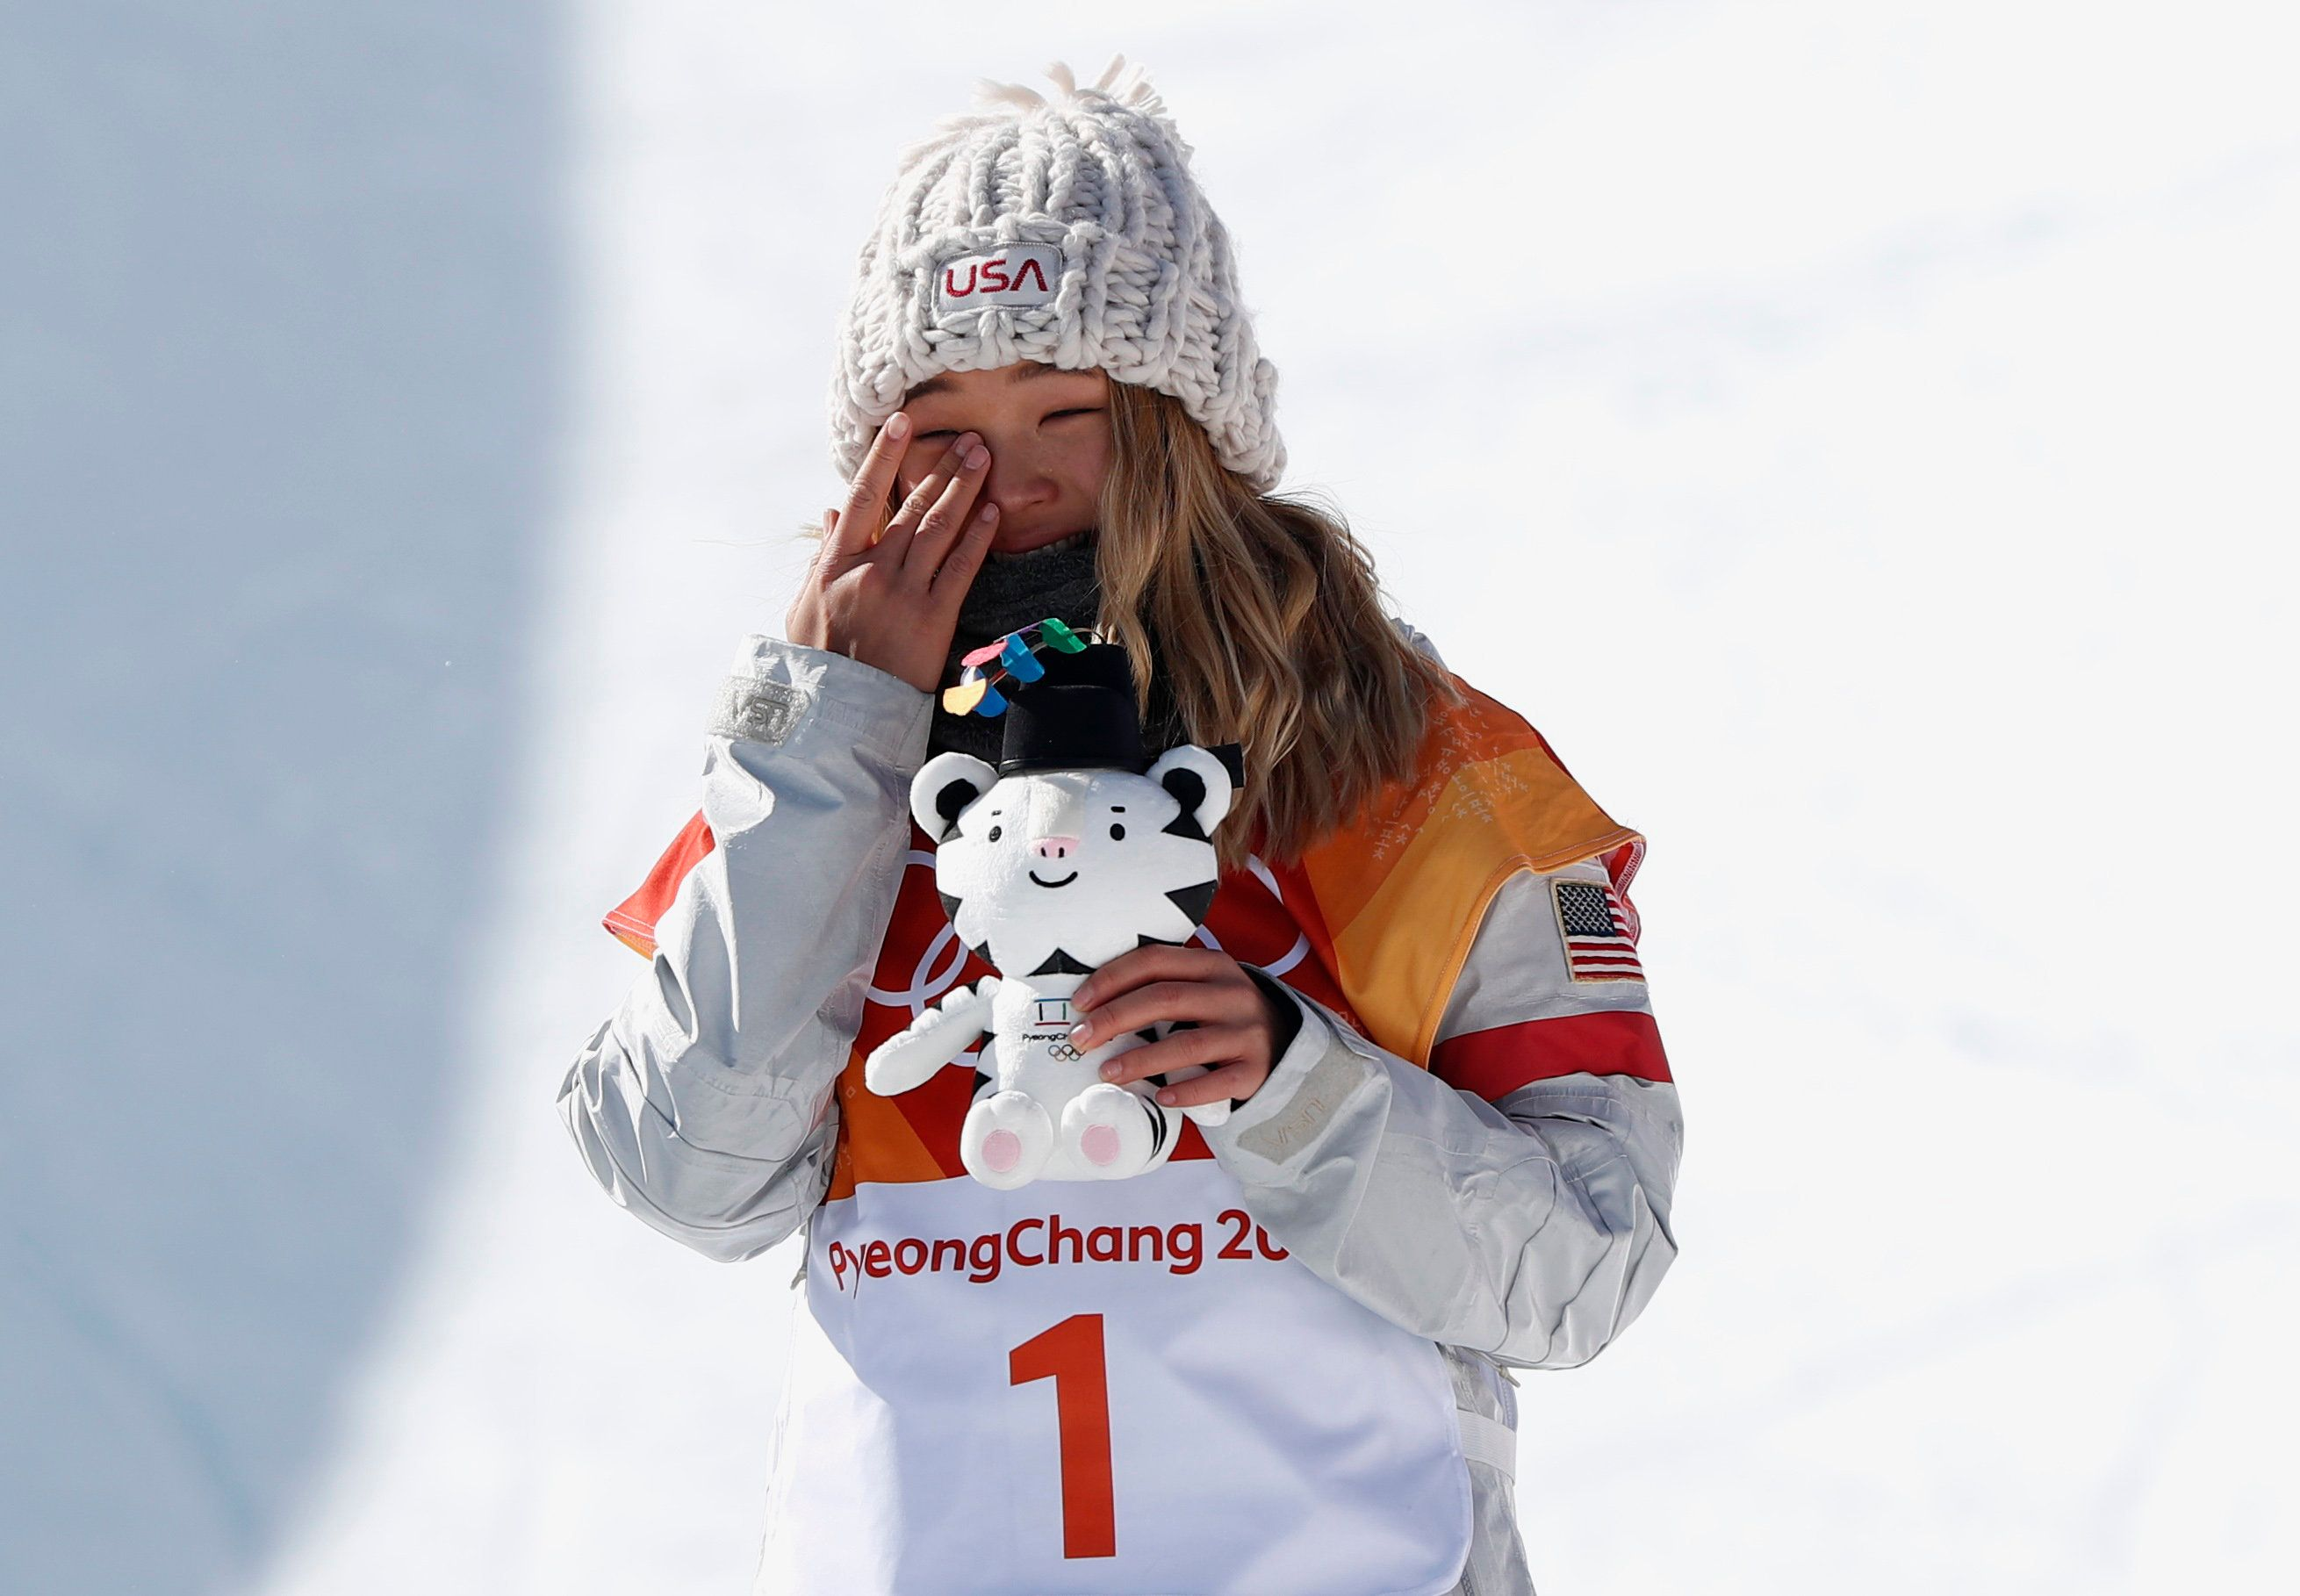 Snowboarding - Pyeongchang 2018 Winter Olympics - Women's Halfpipe Finals - Phoenix Snow Park - Pyeongchang, South Korea - February 13, 2018  - Gold medallist Chloe Kim of the U.S. reacts while holding her Soohorang Olympic mascot during the flowers ceremony. REUTERS/Issei Kato